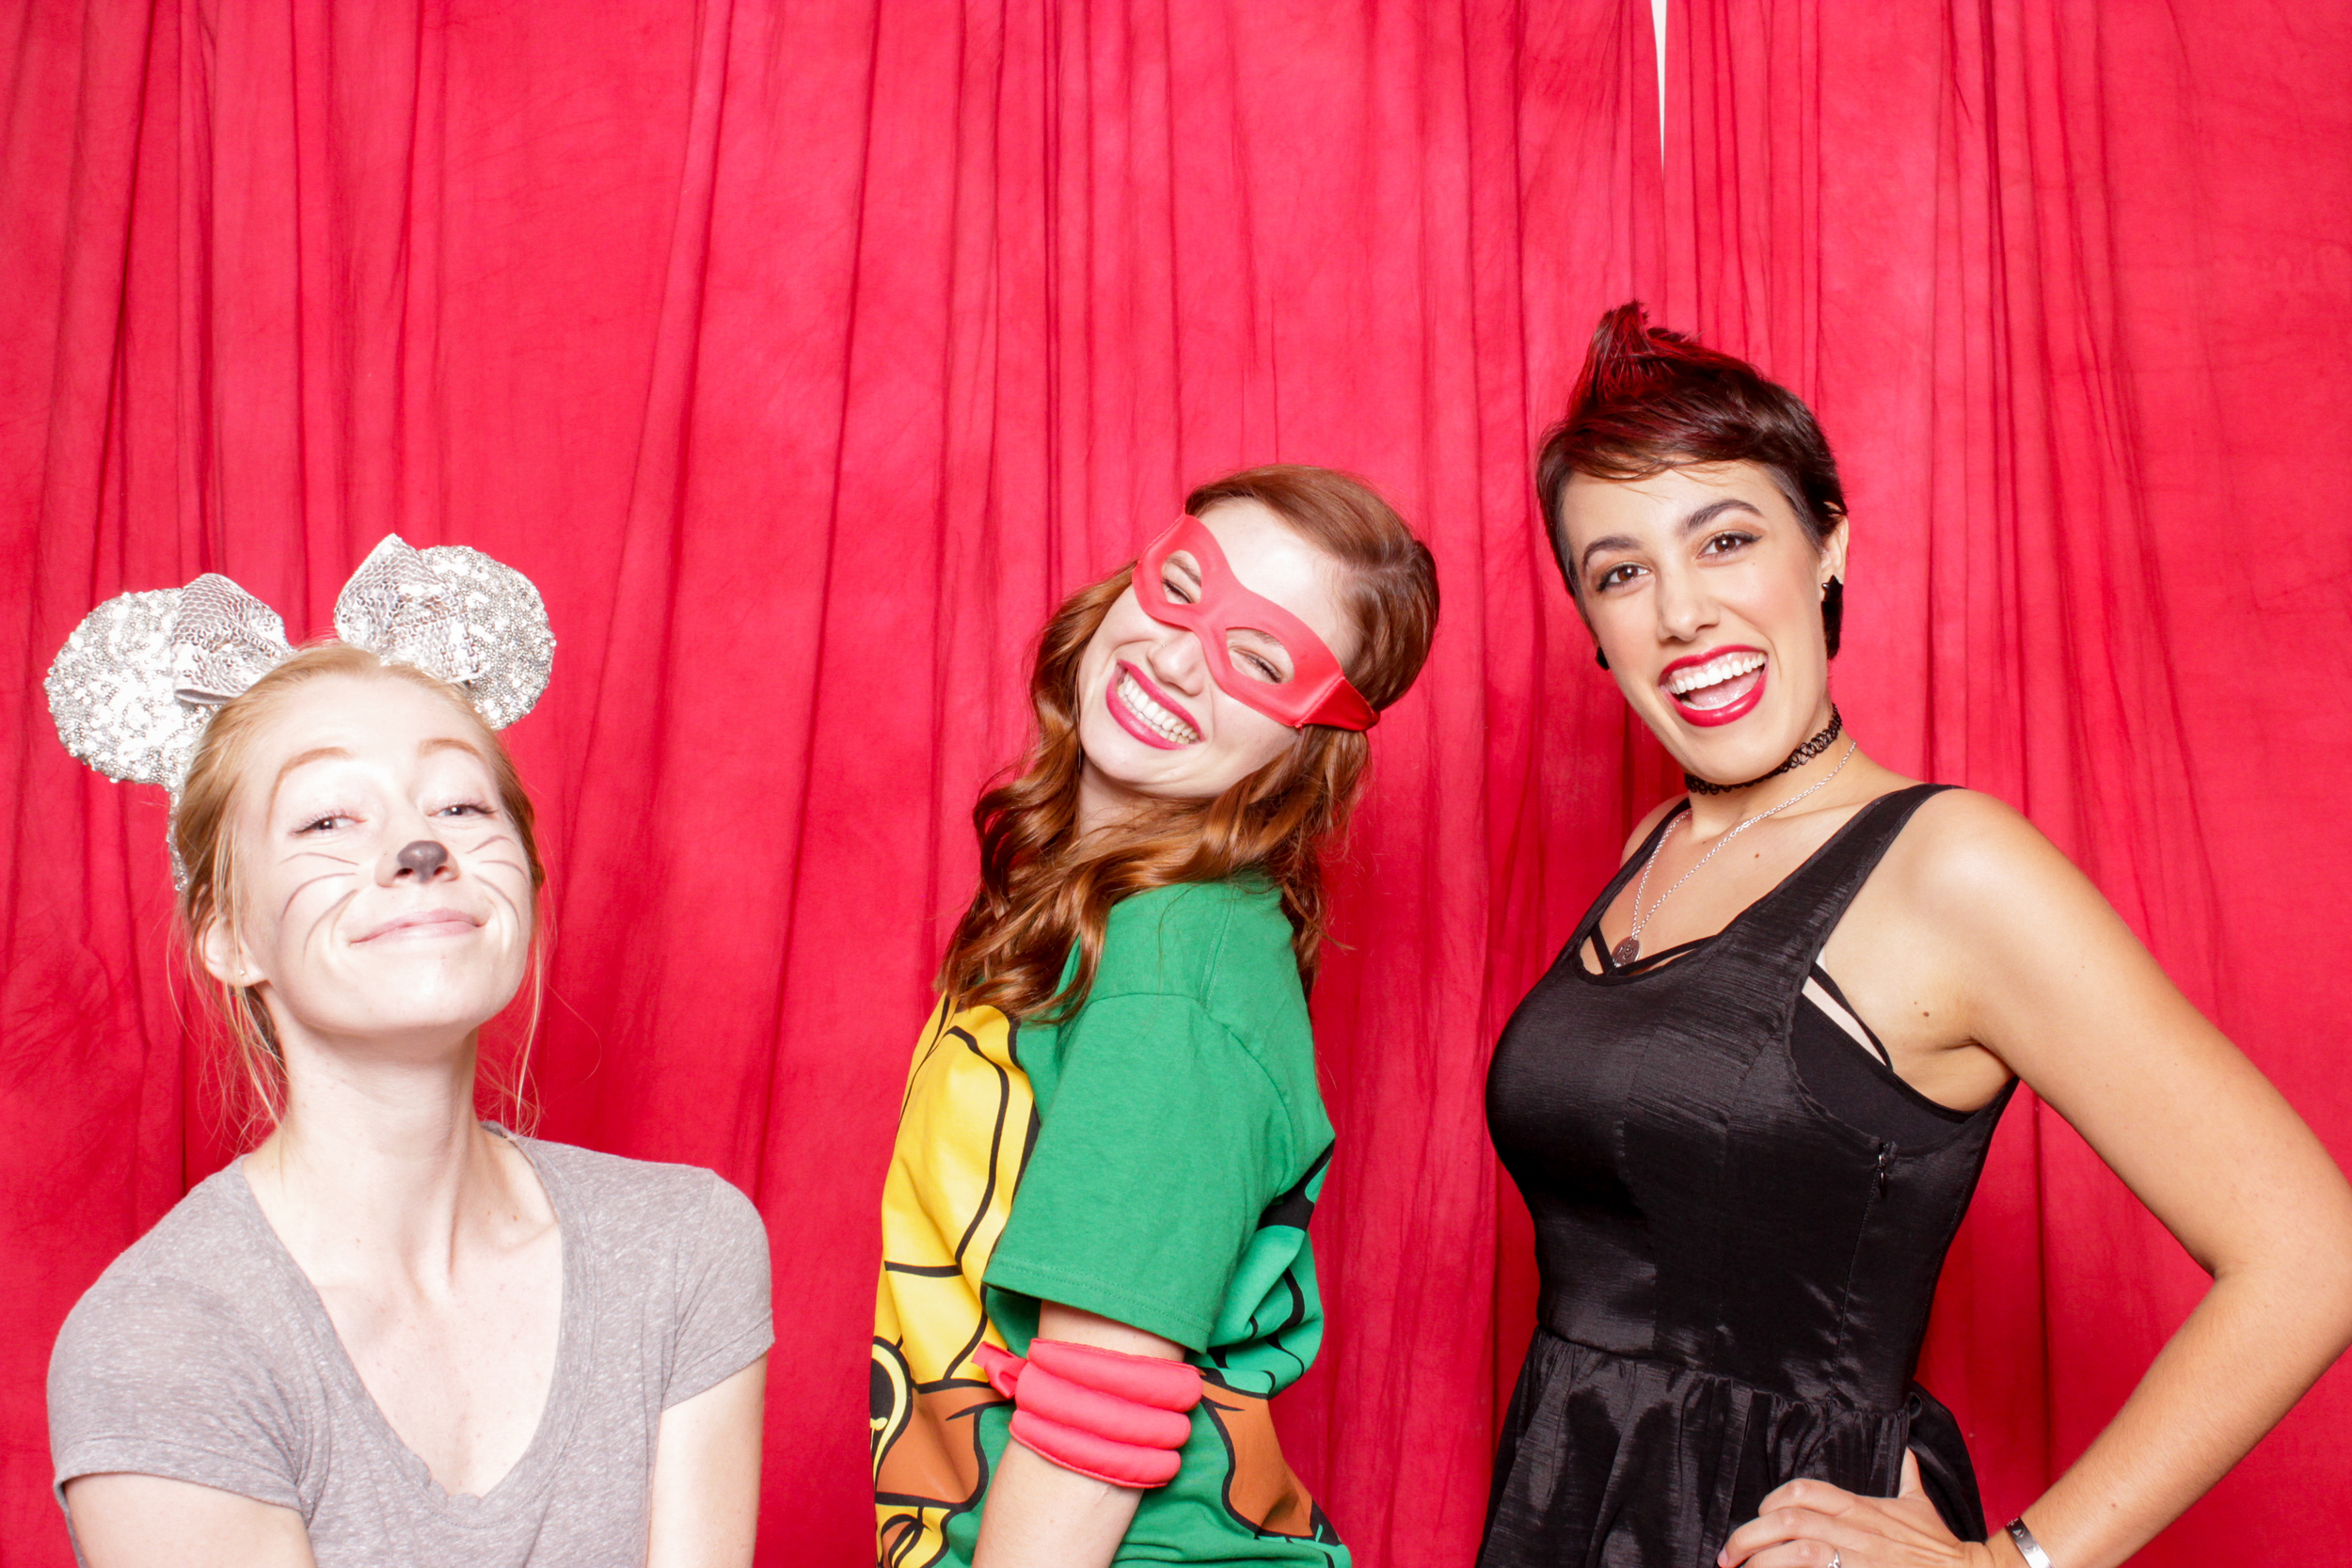 chico-photo-booth-rental-halloween-party-168.jpg